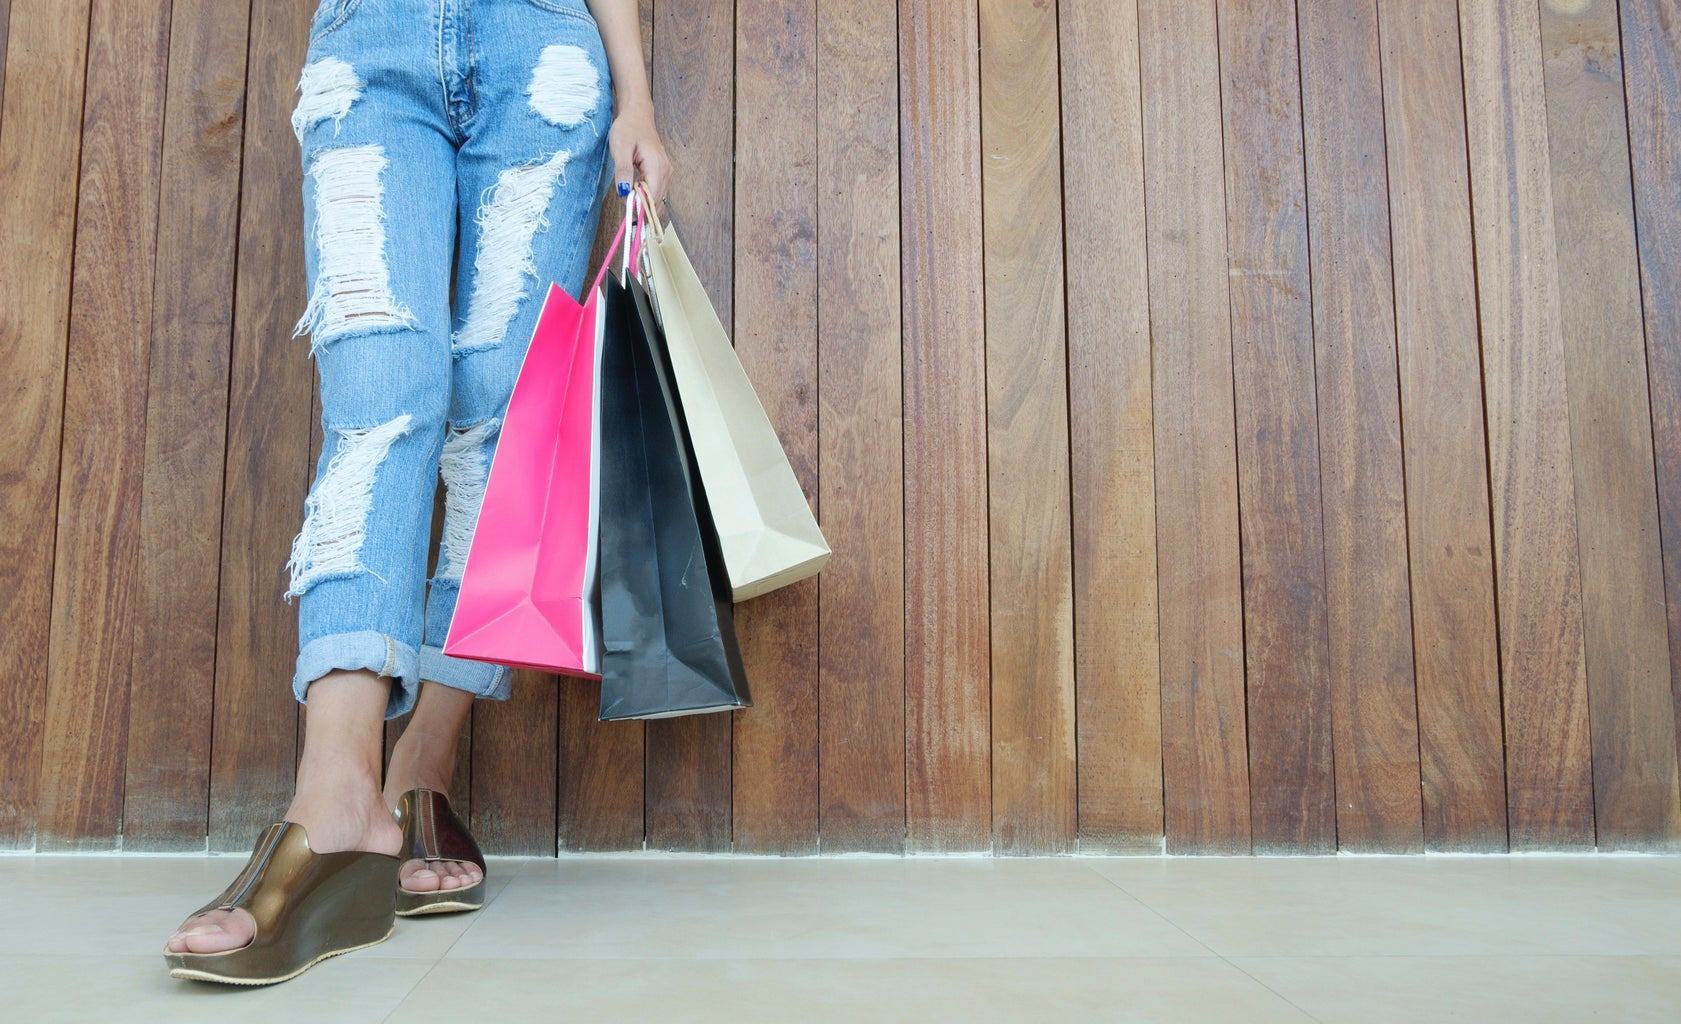 Girl\'s feet with distressed jeans and shopping bags